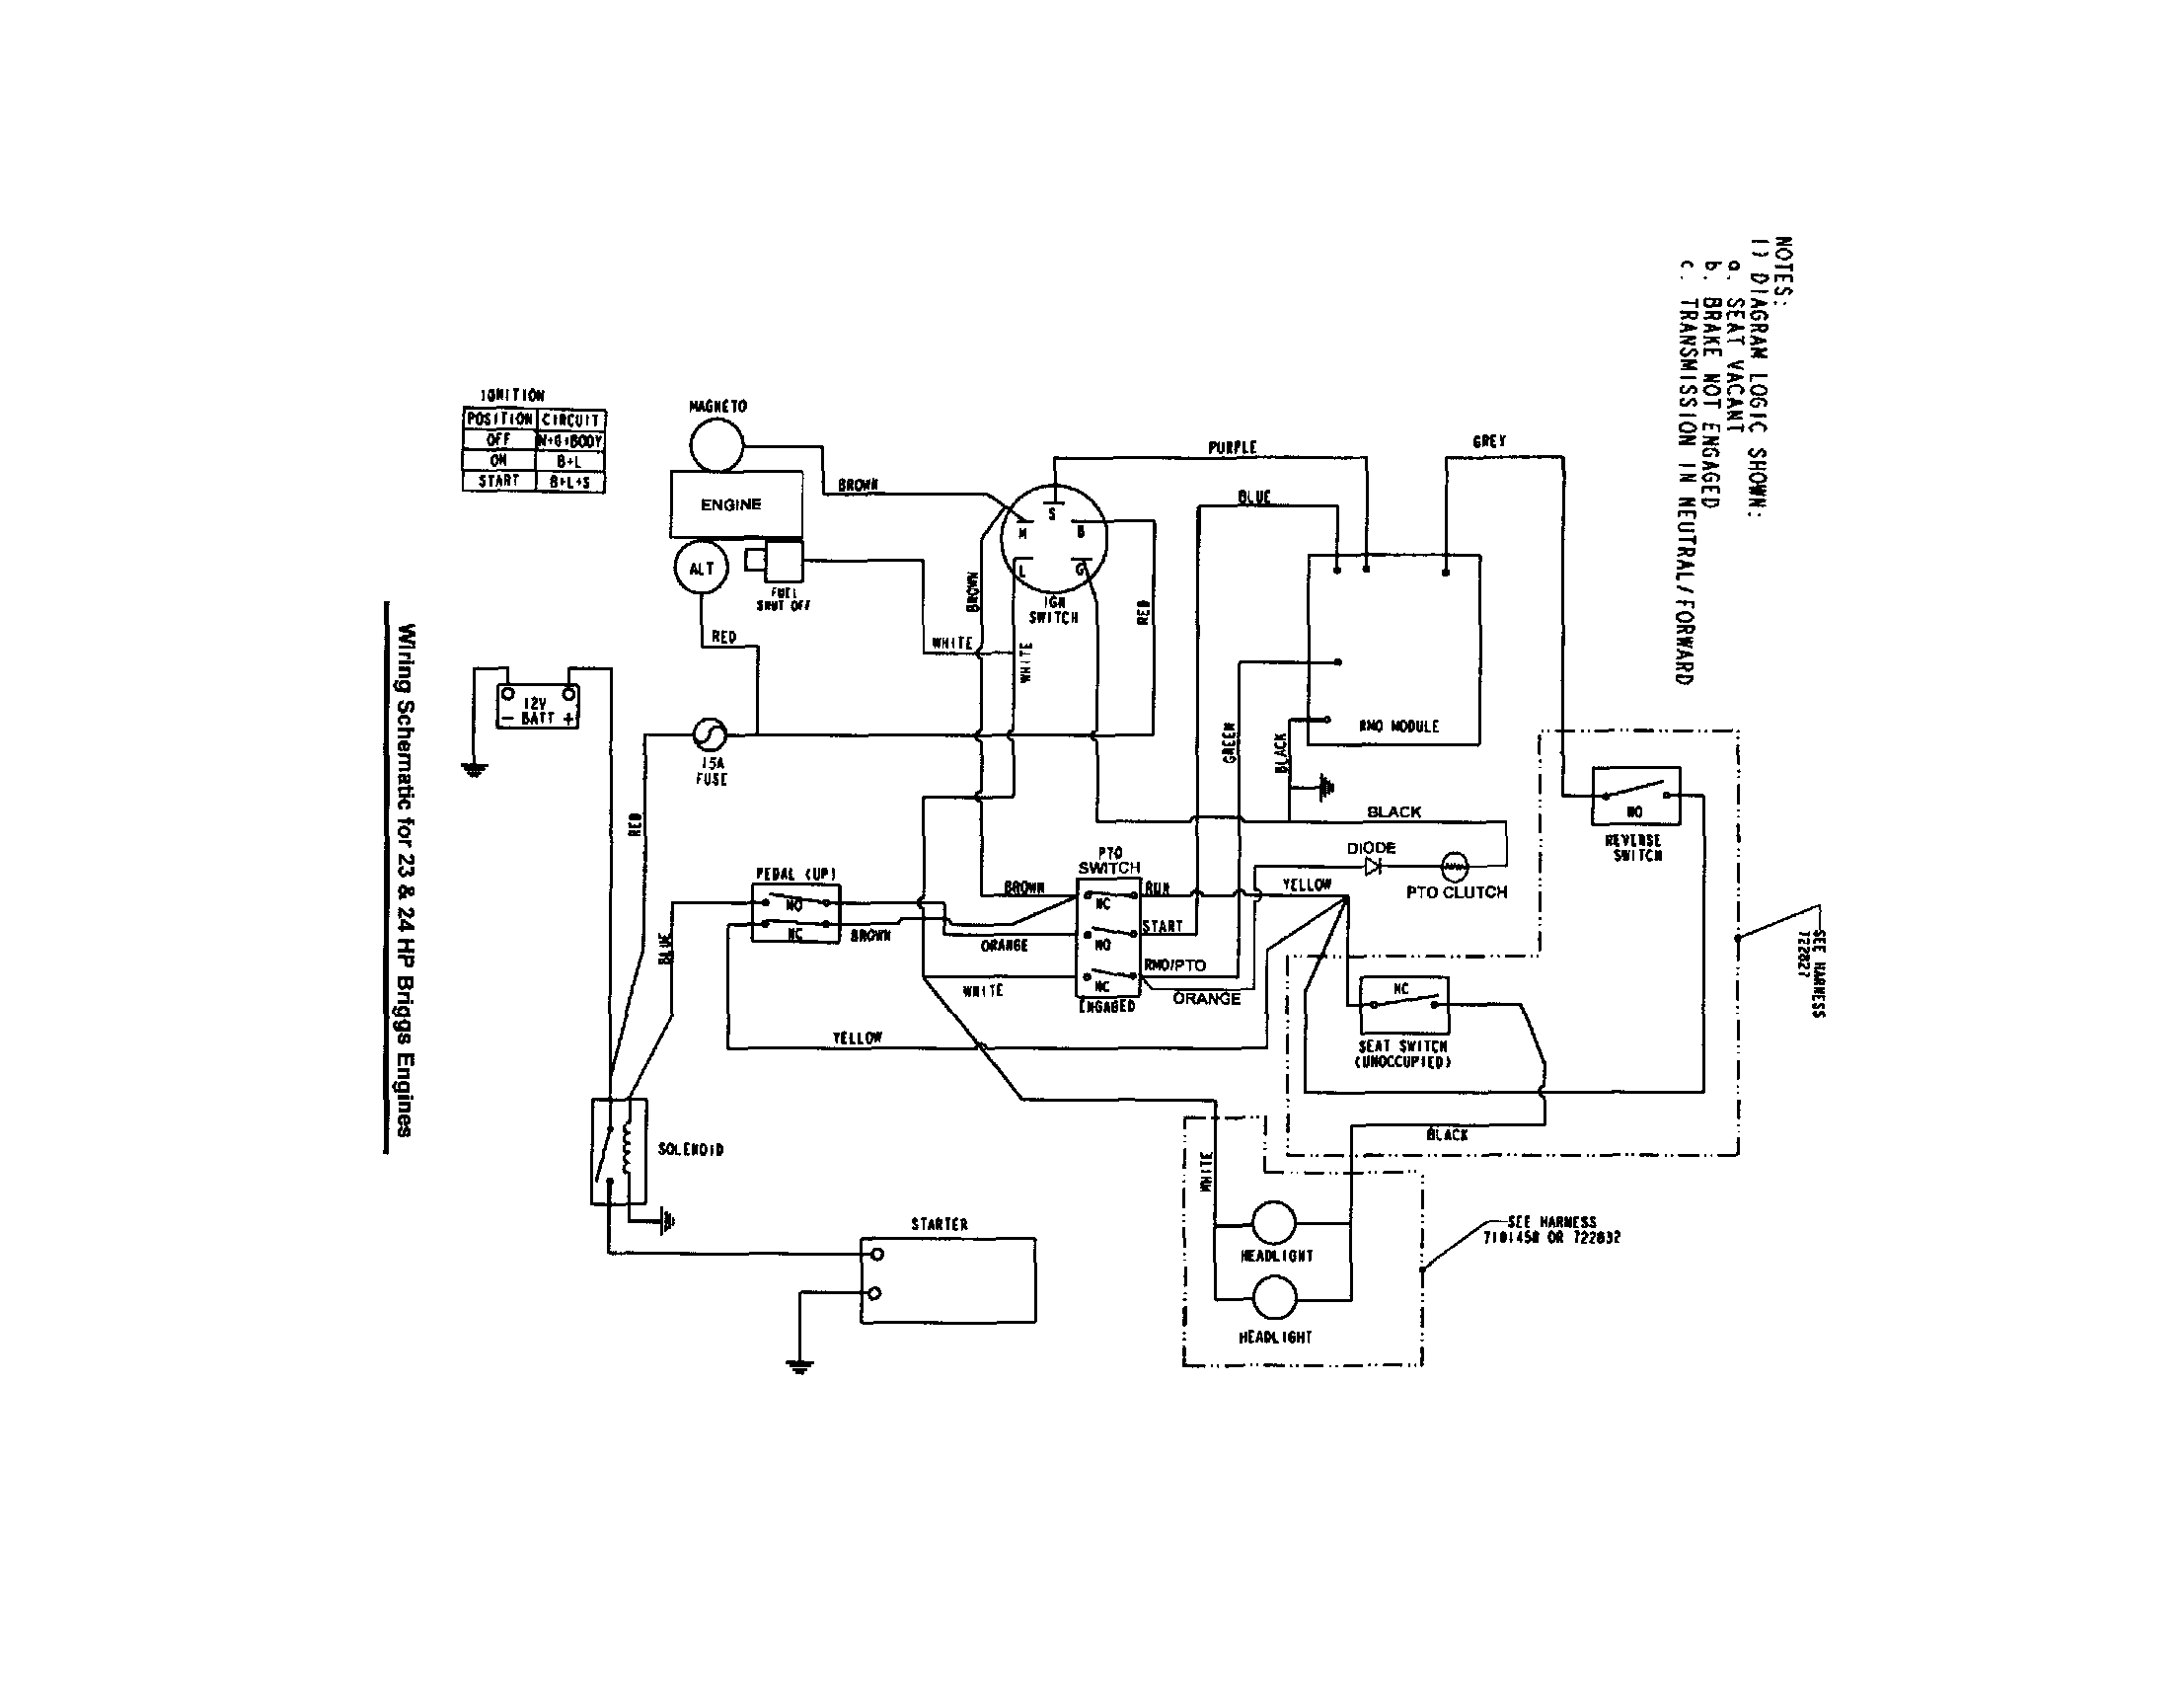 snapper lt160h42cbv2 wiring harness wiring diagram 15488 snapper wiring harness [ 2213 x 1714 Pixel ]